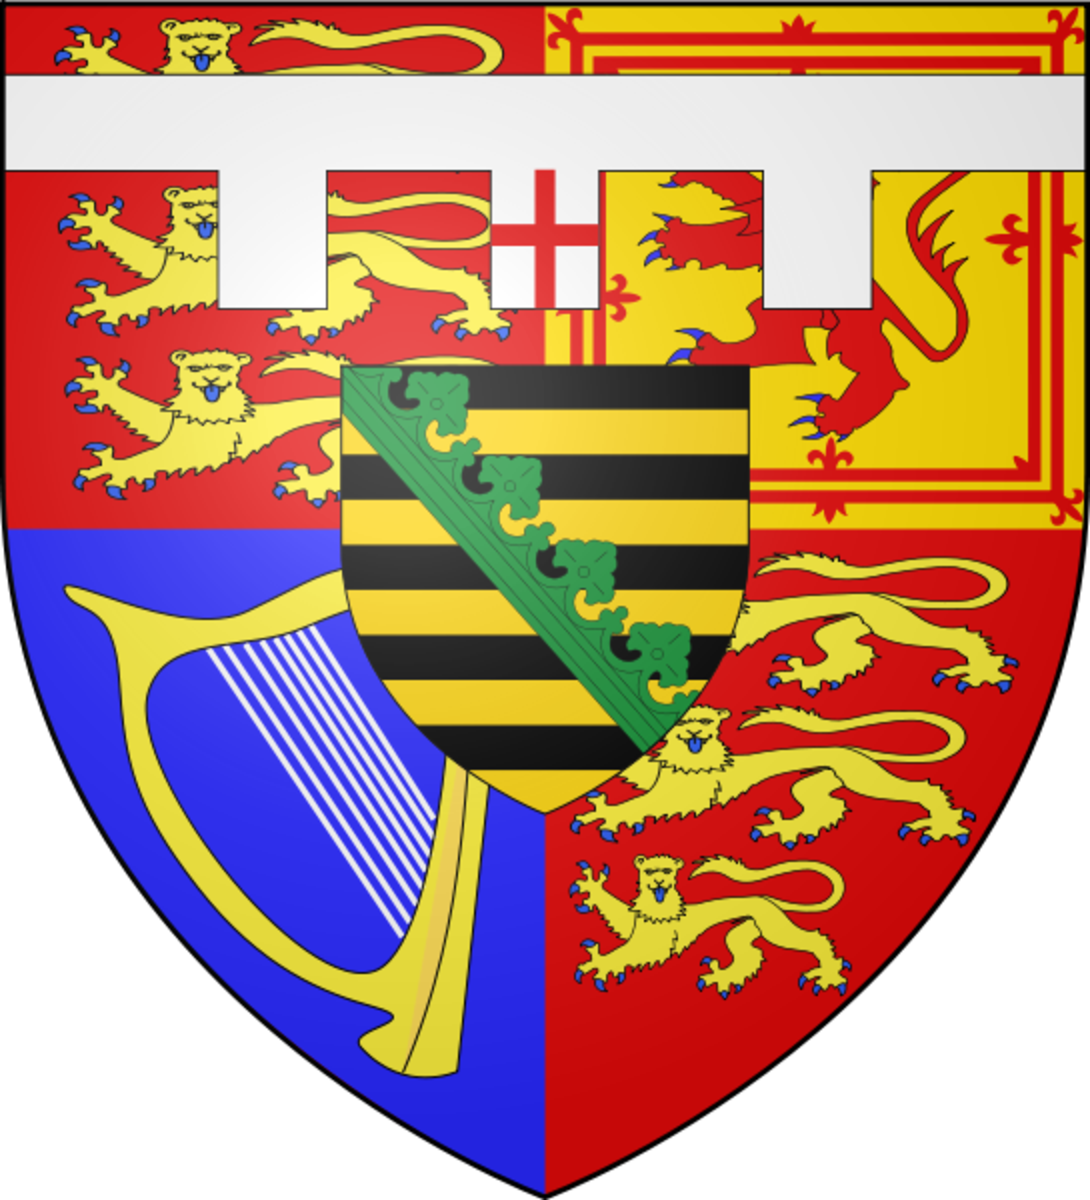 Coat of arms of the Duke of Clarence.